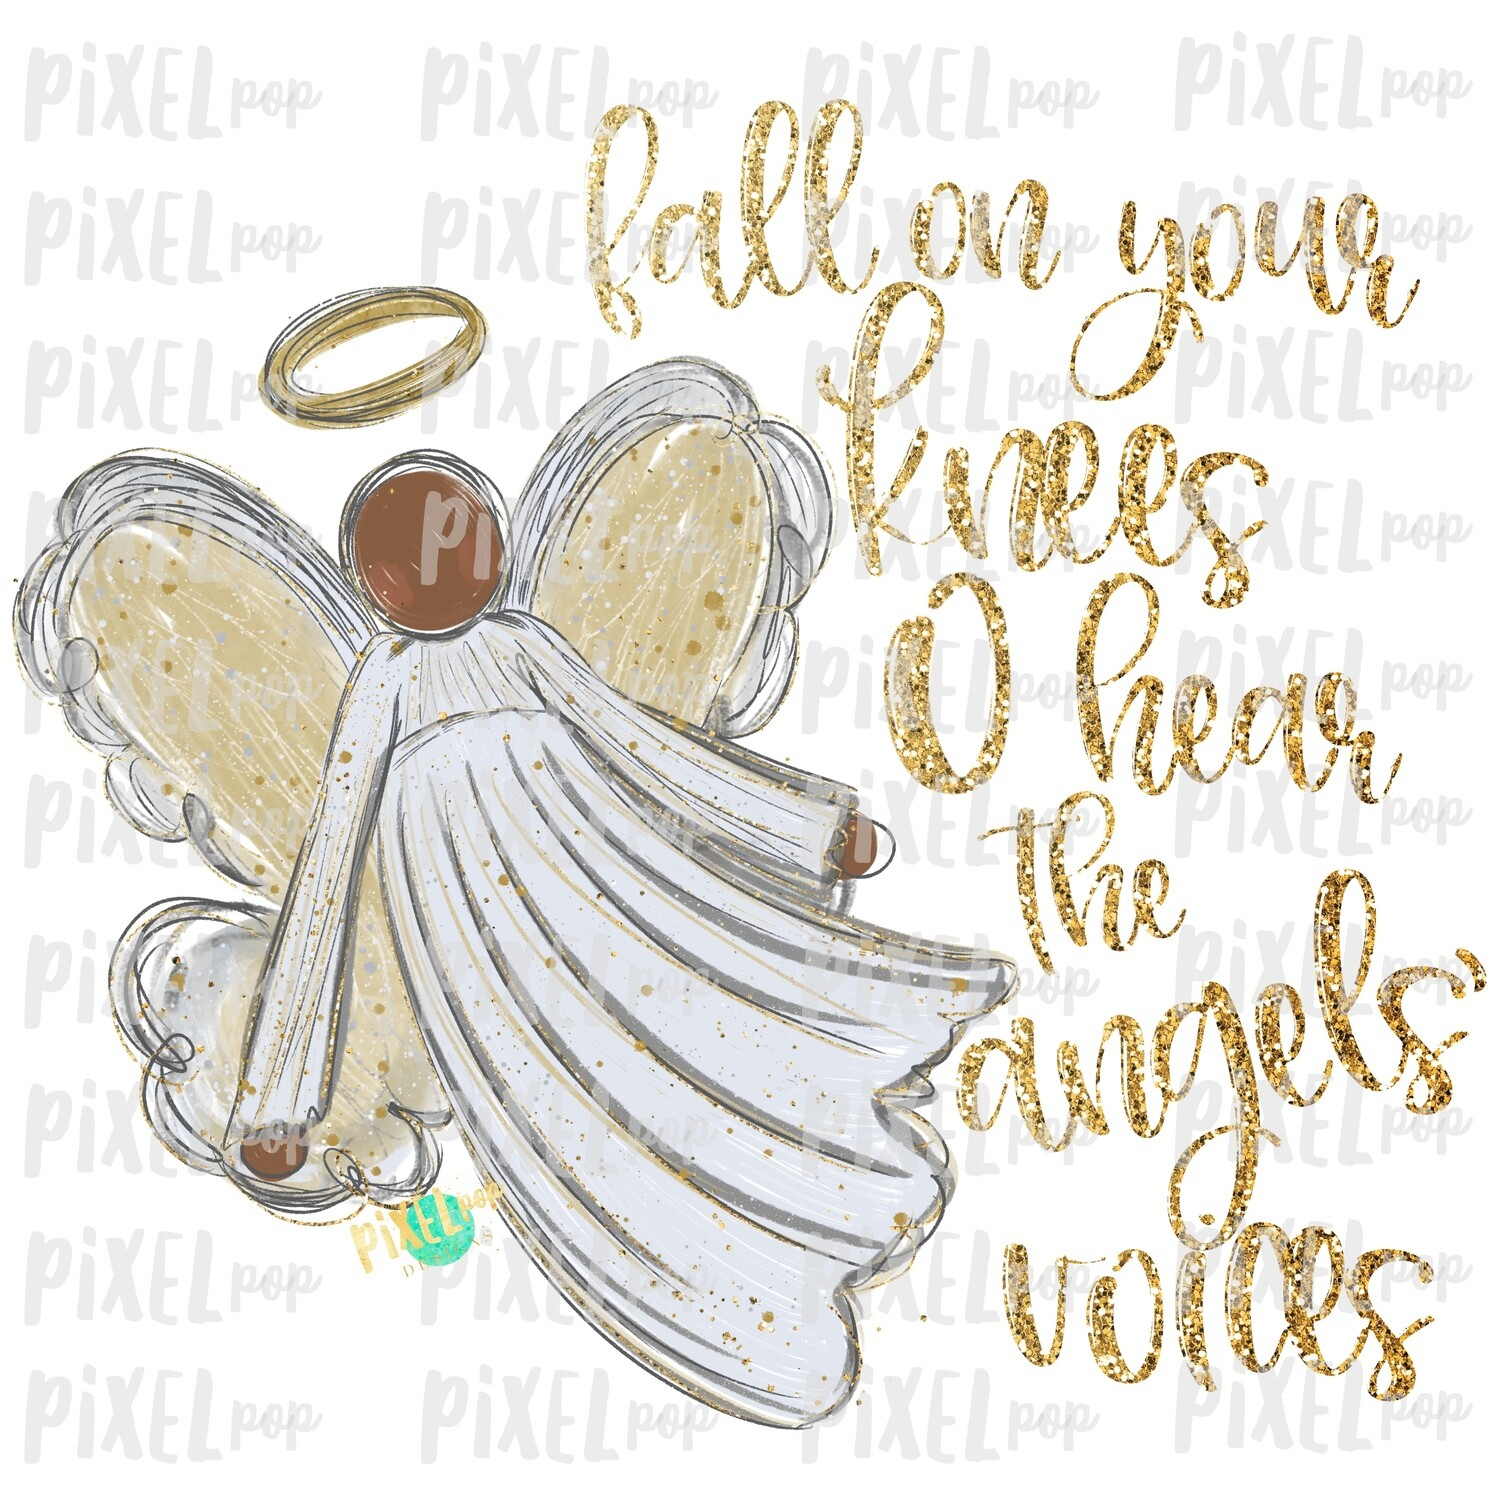 Dark Skin Angel GLITTER Fall on Your Knees Art Sublimation PNG | Ornament Design | Hand Painted | Digital Download | Printable | Christmas